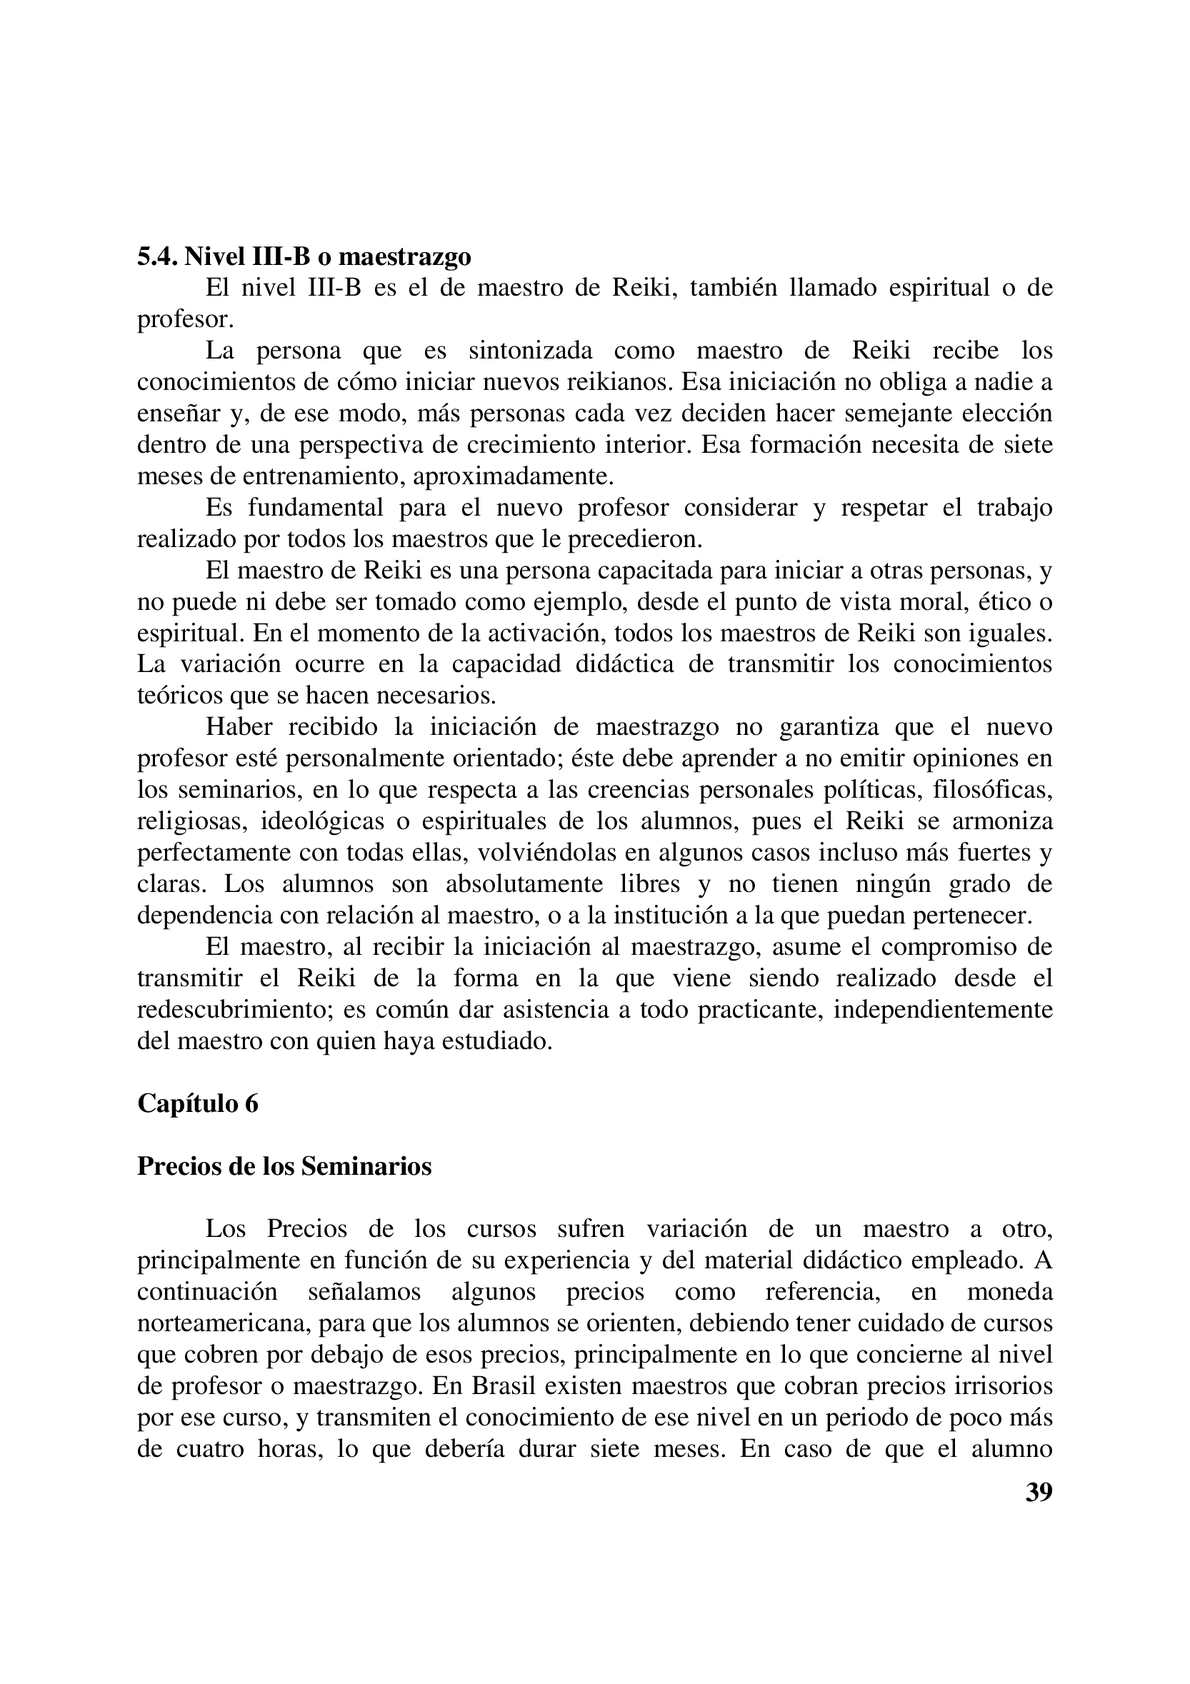 Page 39